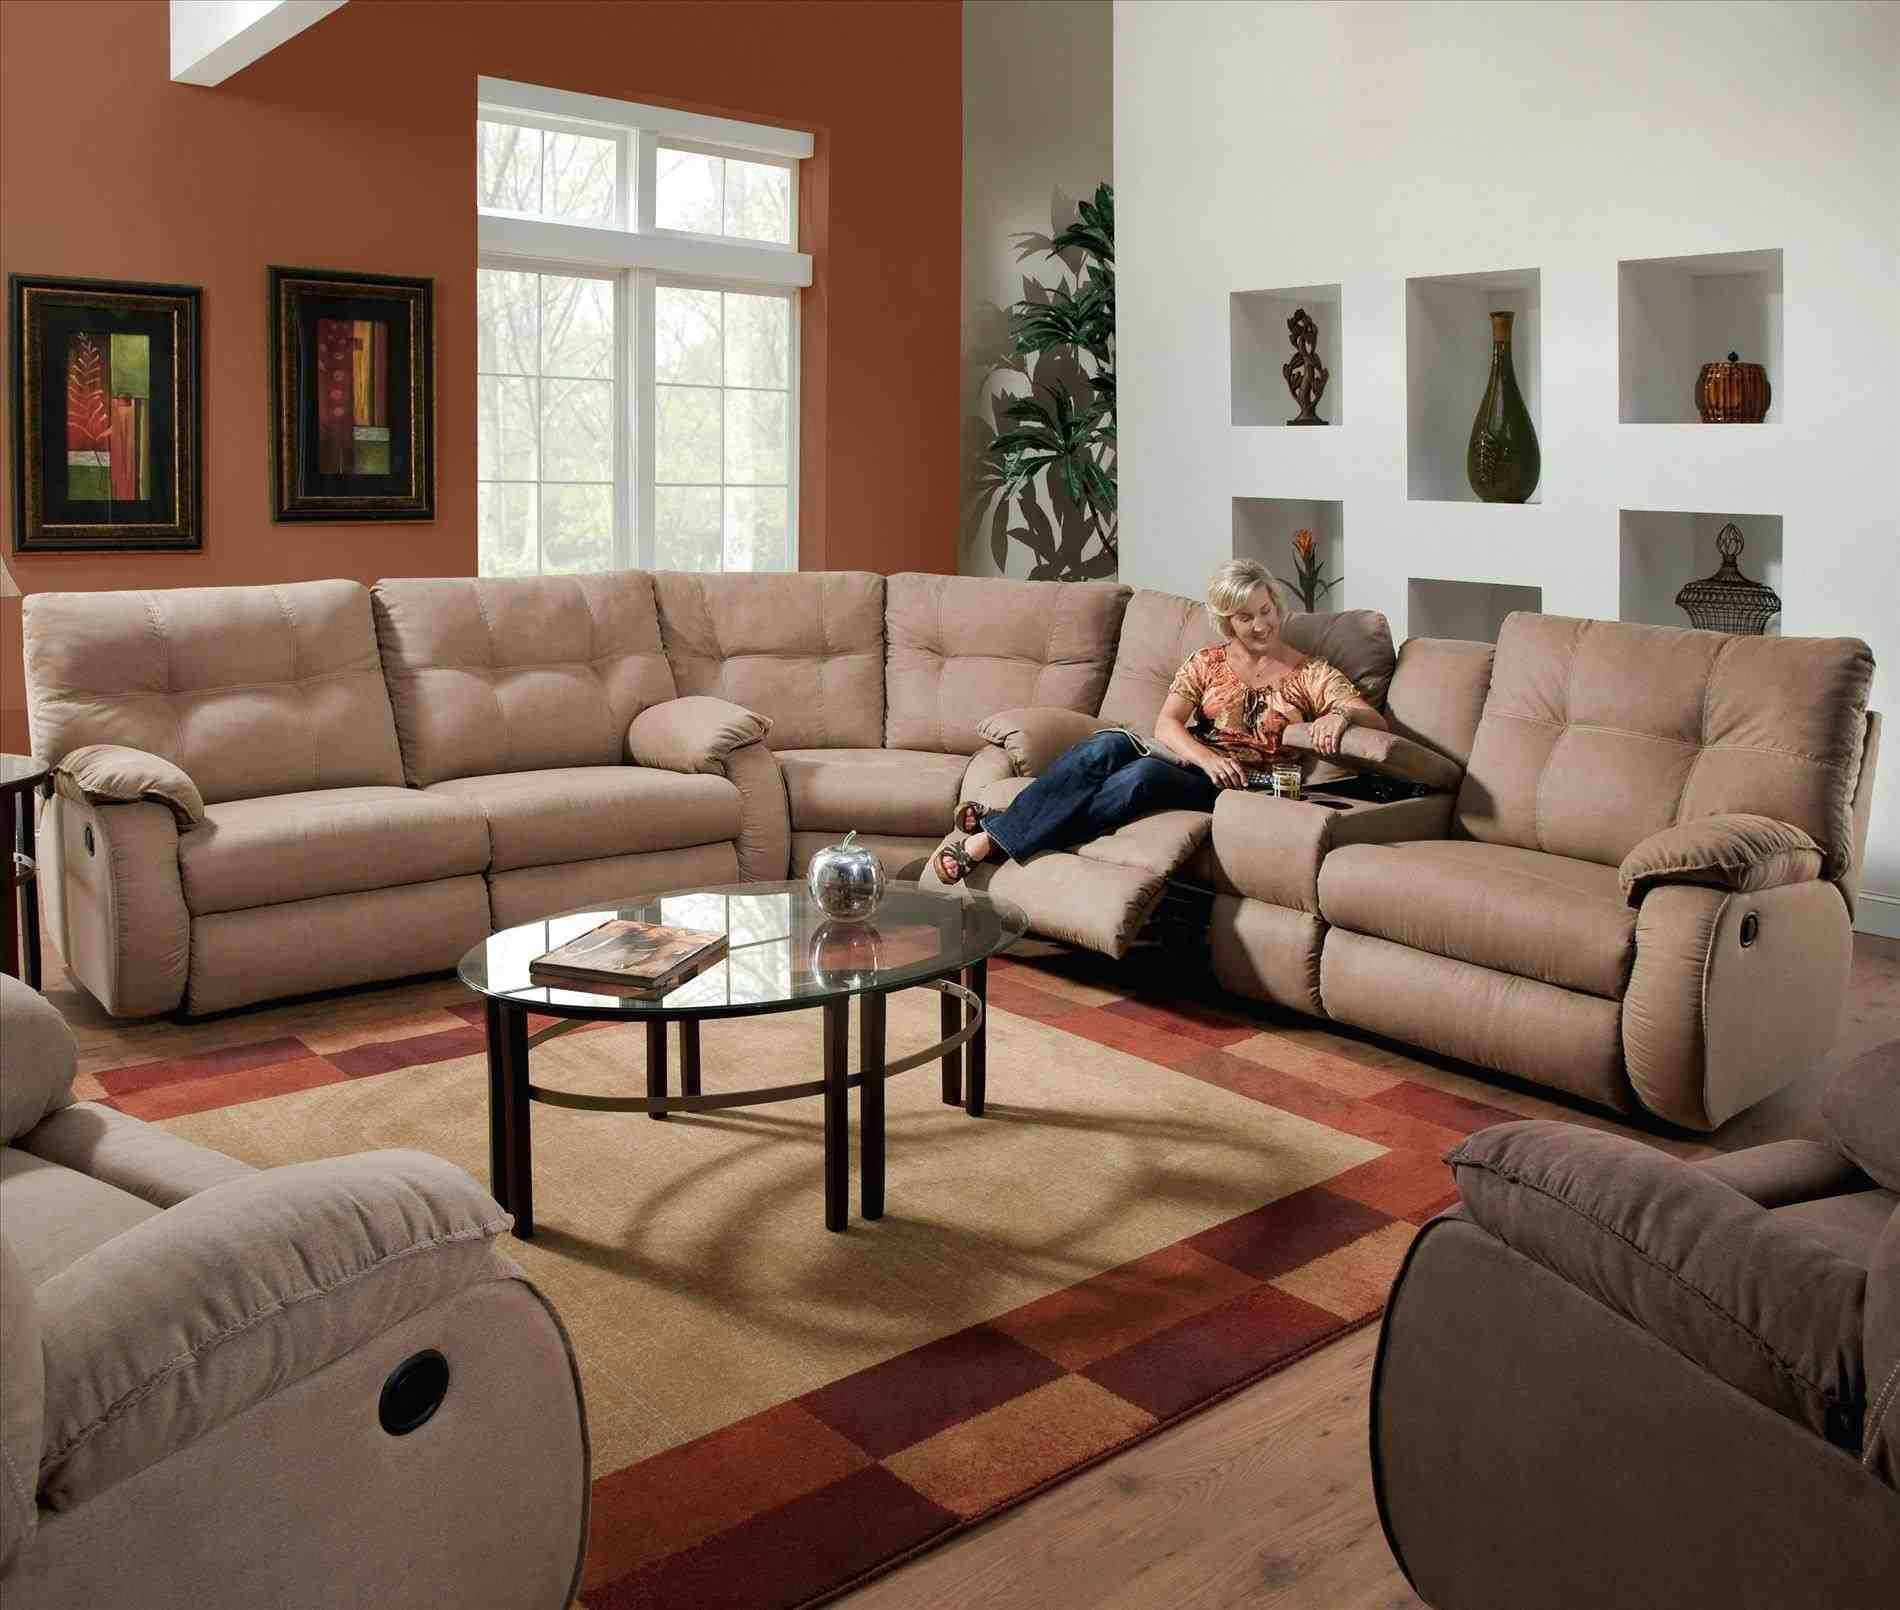 110 Arm Chairs Ideas Furniture Chair And A Half Slipcovers For Chairs